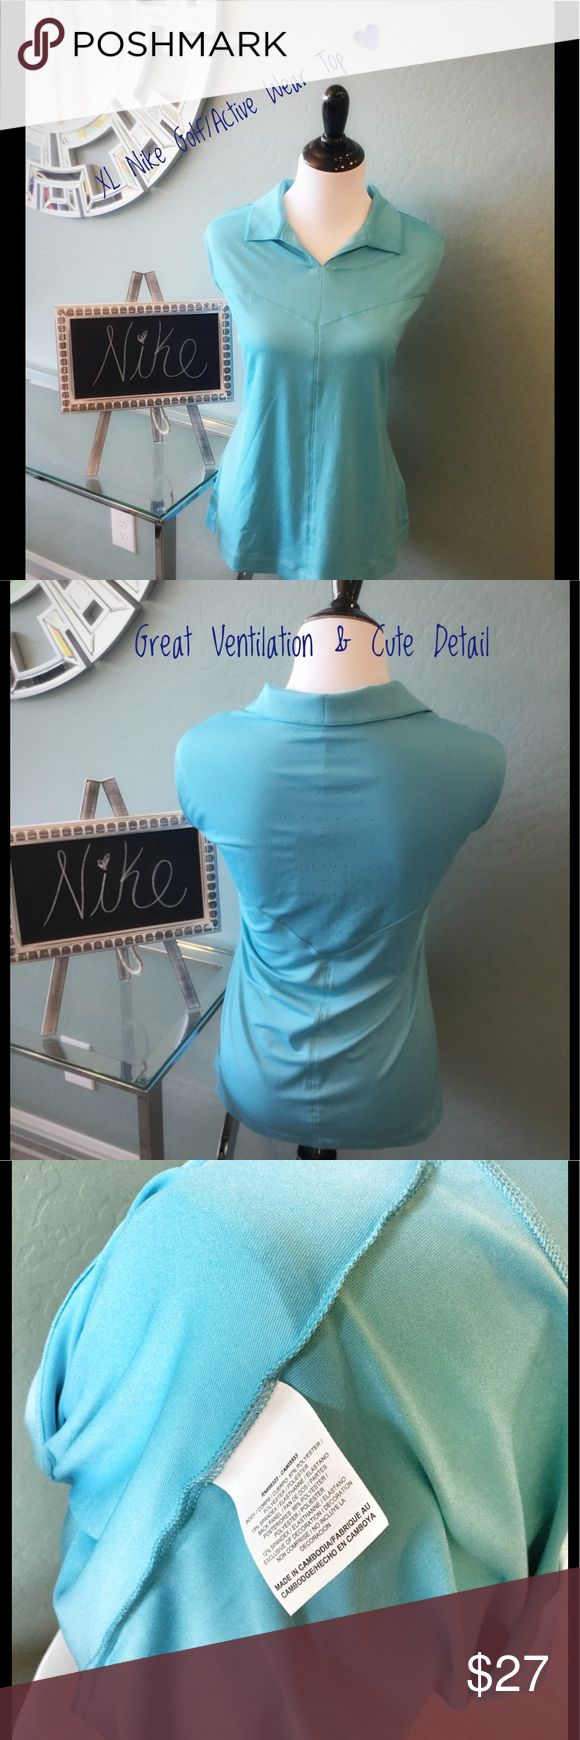 Nike Golf/ Active Wear Top Nike Golf/ active wear top in a size XL true to size. Brand new with tags. Pretty turquoise with perforations to the back help with ventilation. Perfect for a day on the golf course or for any outdoor activity. Nike Tops